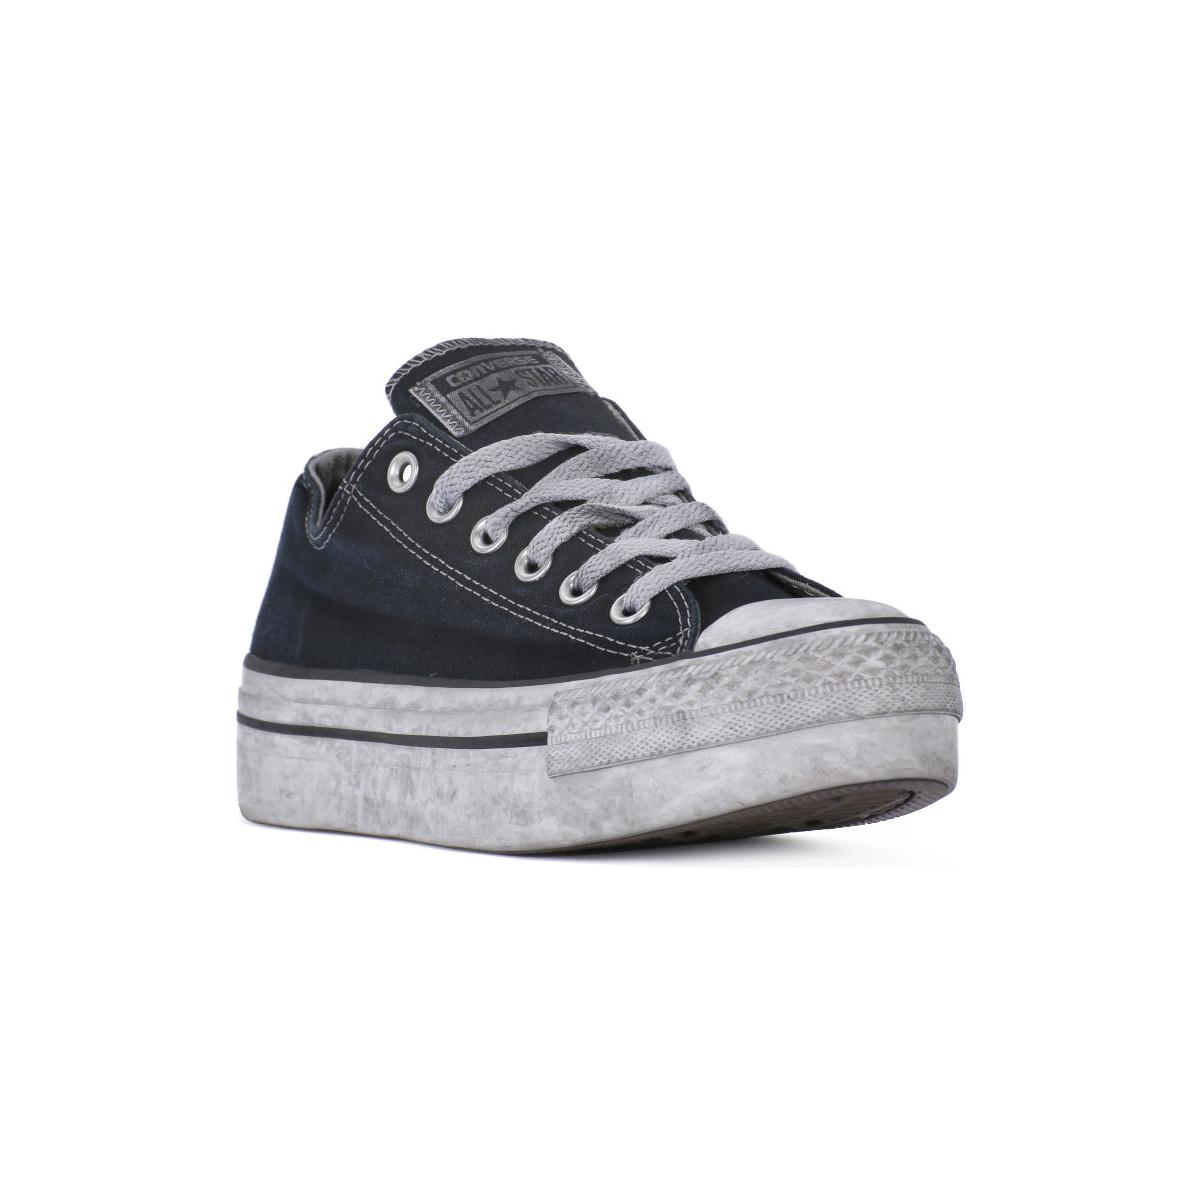 c6297f6a6d4a Converse All Star Platform Ox Black Smoke Women s Shoes (trainers ...